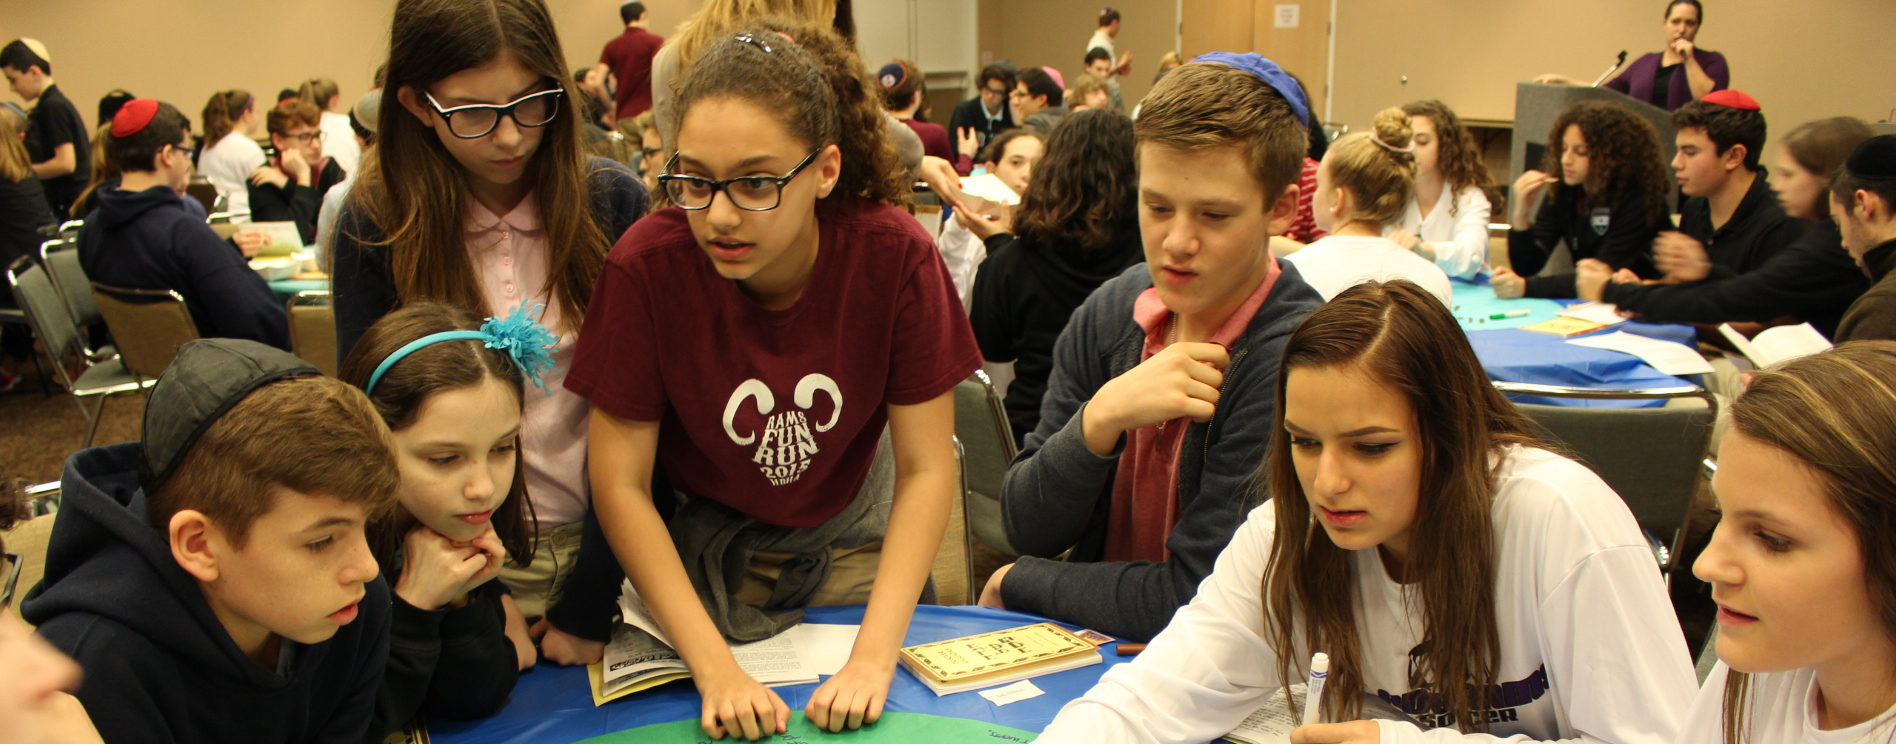 Creative Model Seder Gives Students a New Passover Experience